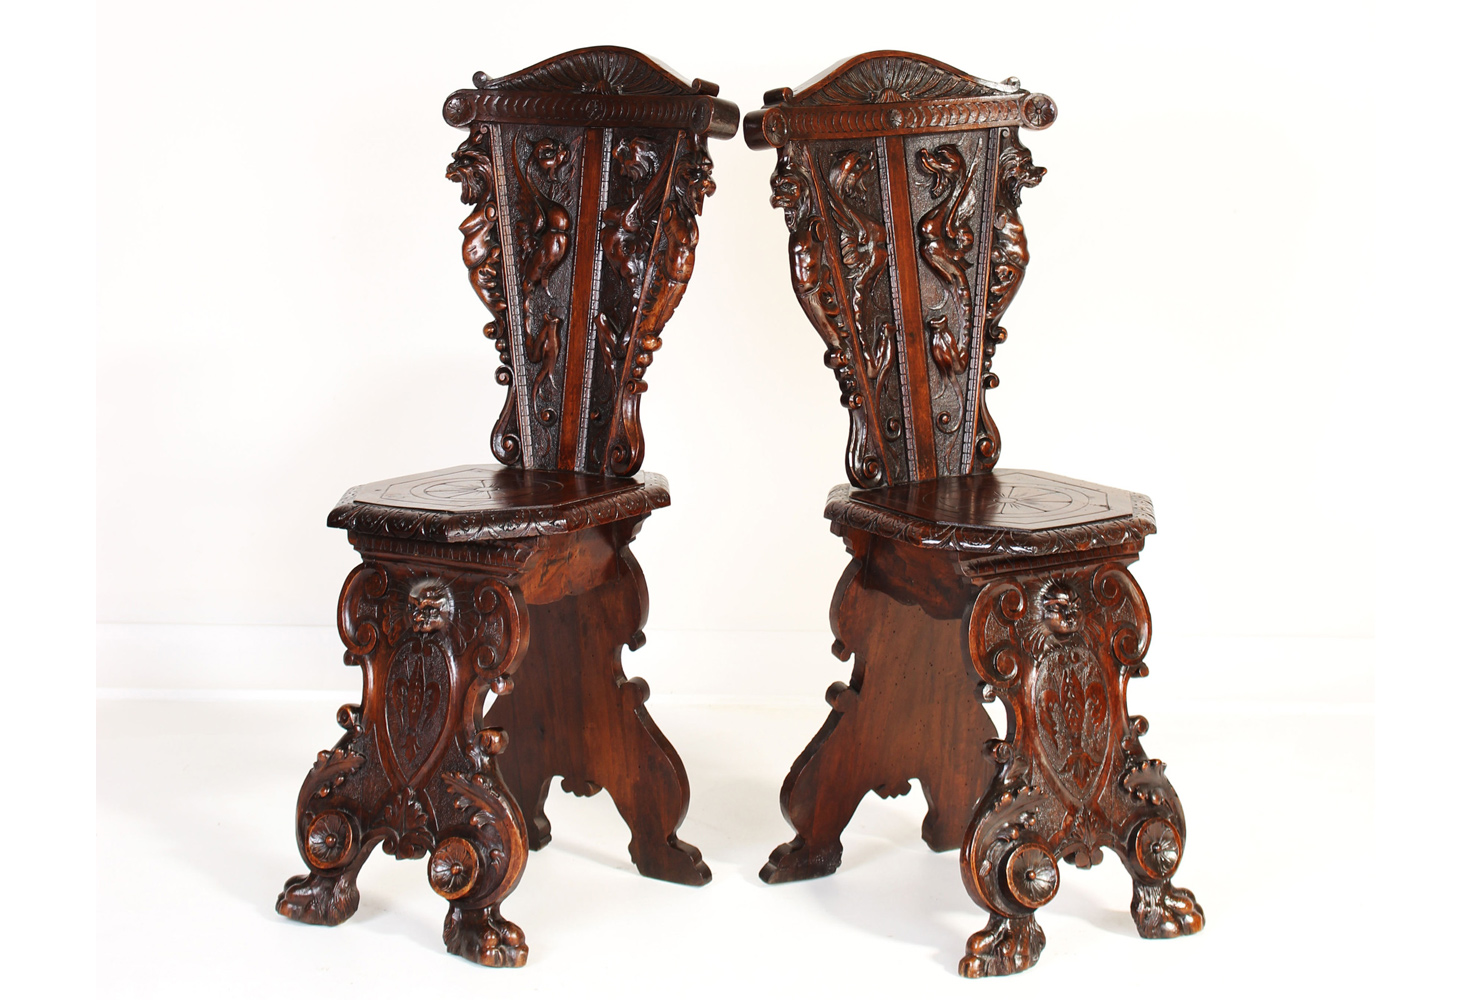 19th Century Renaissance Style Sgabello Chairs